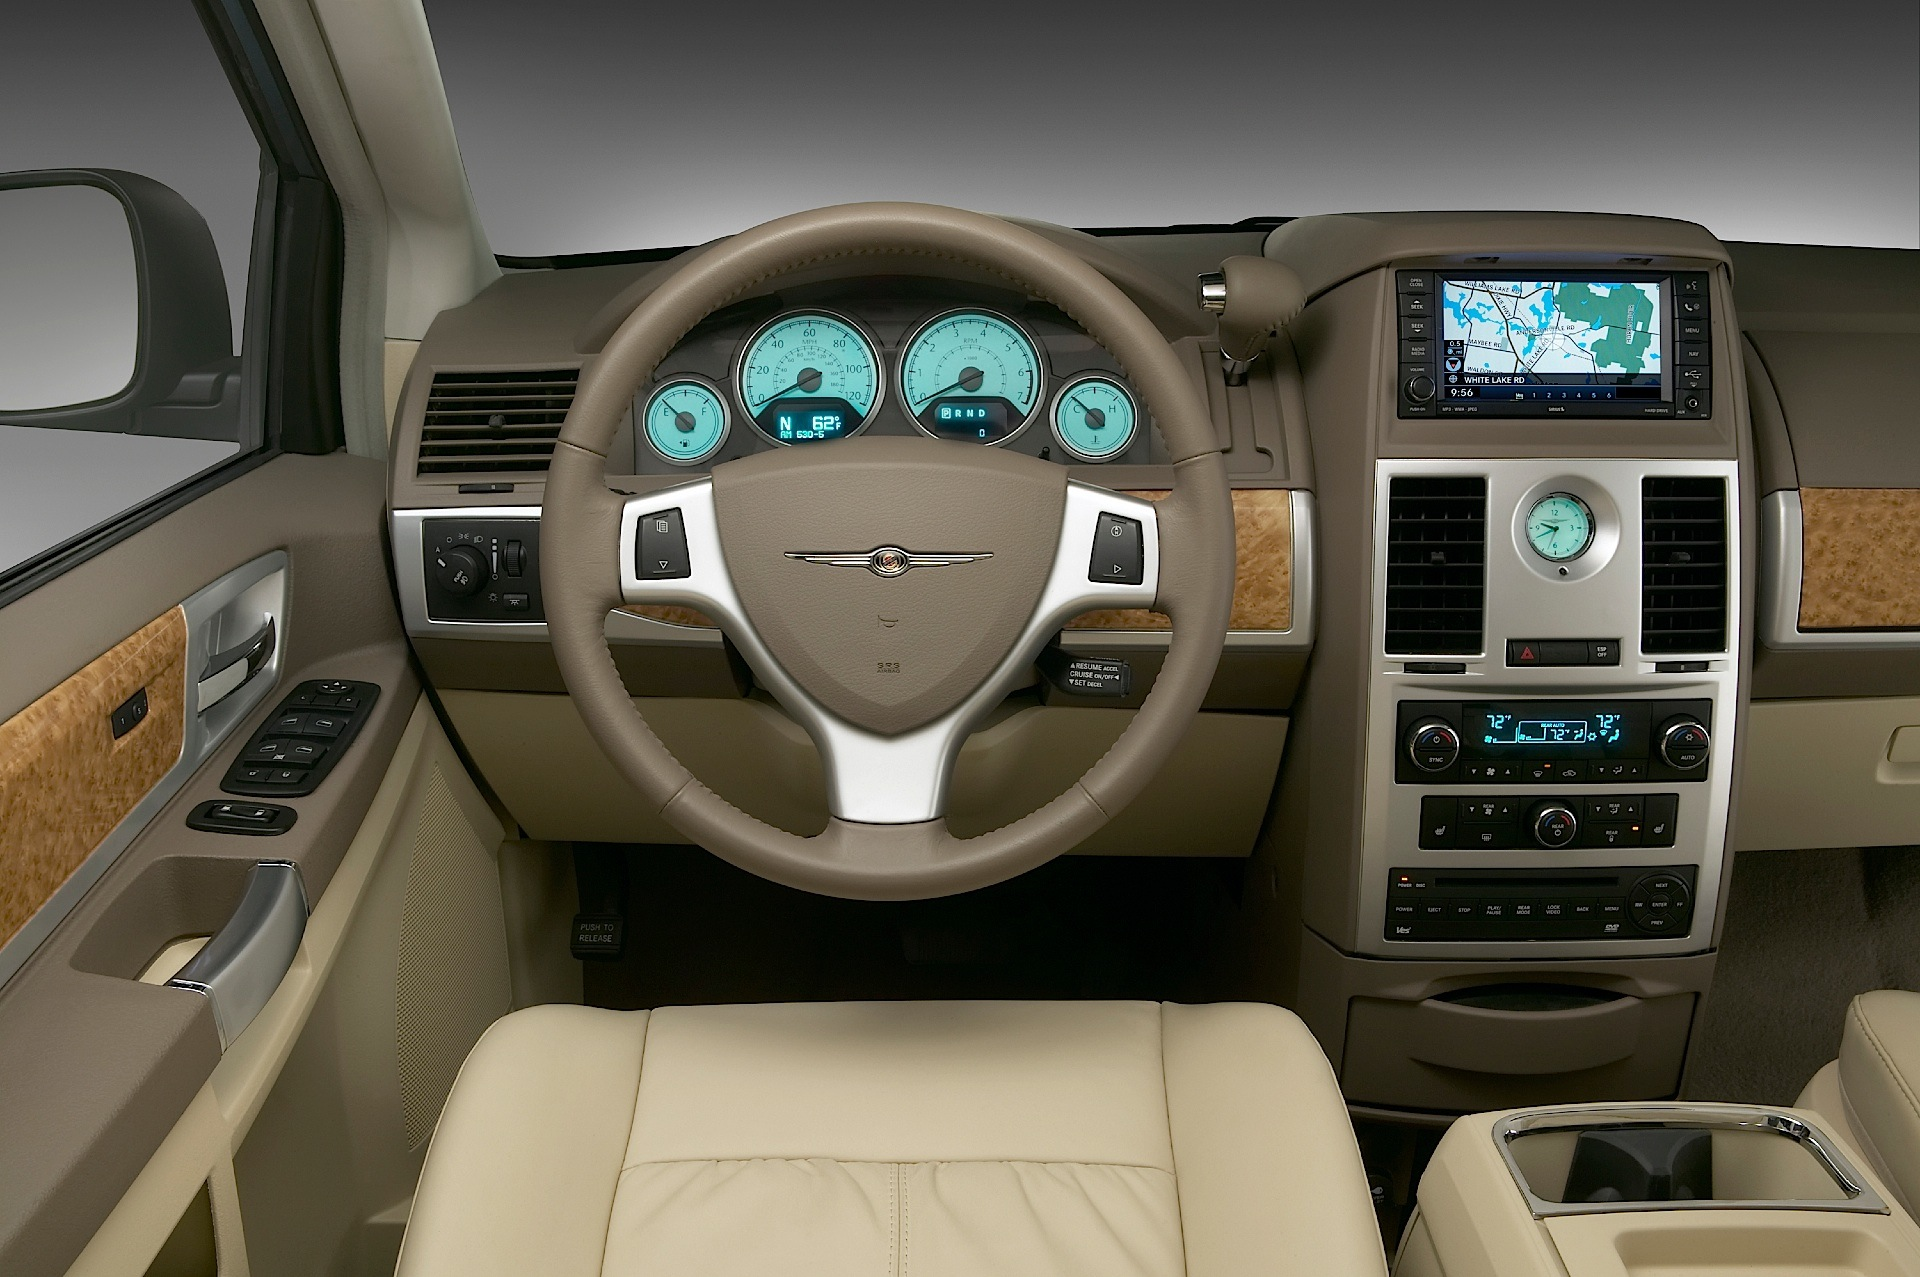 2007 chrysler town and country interior dimensions